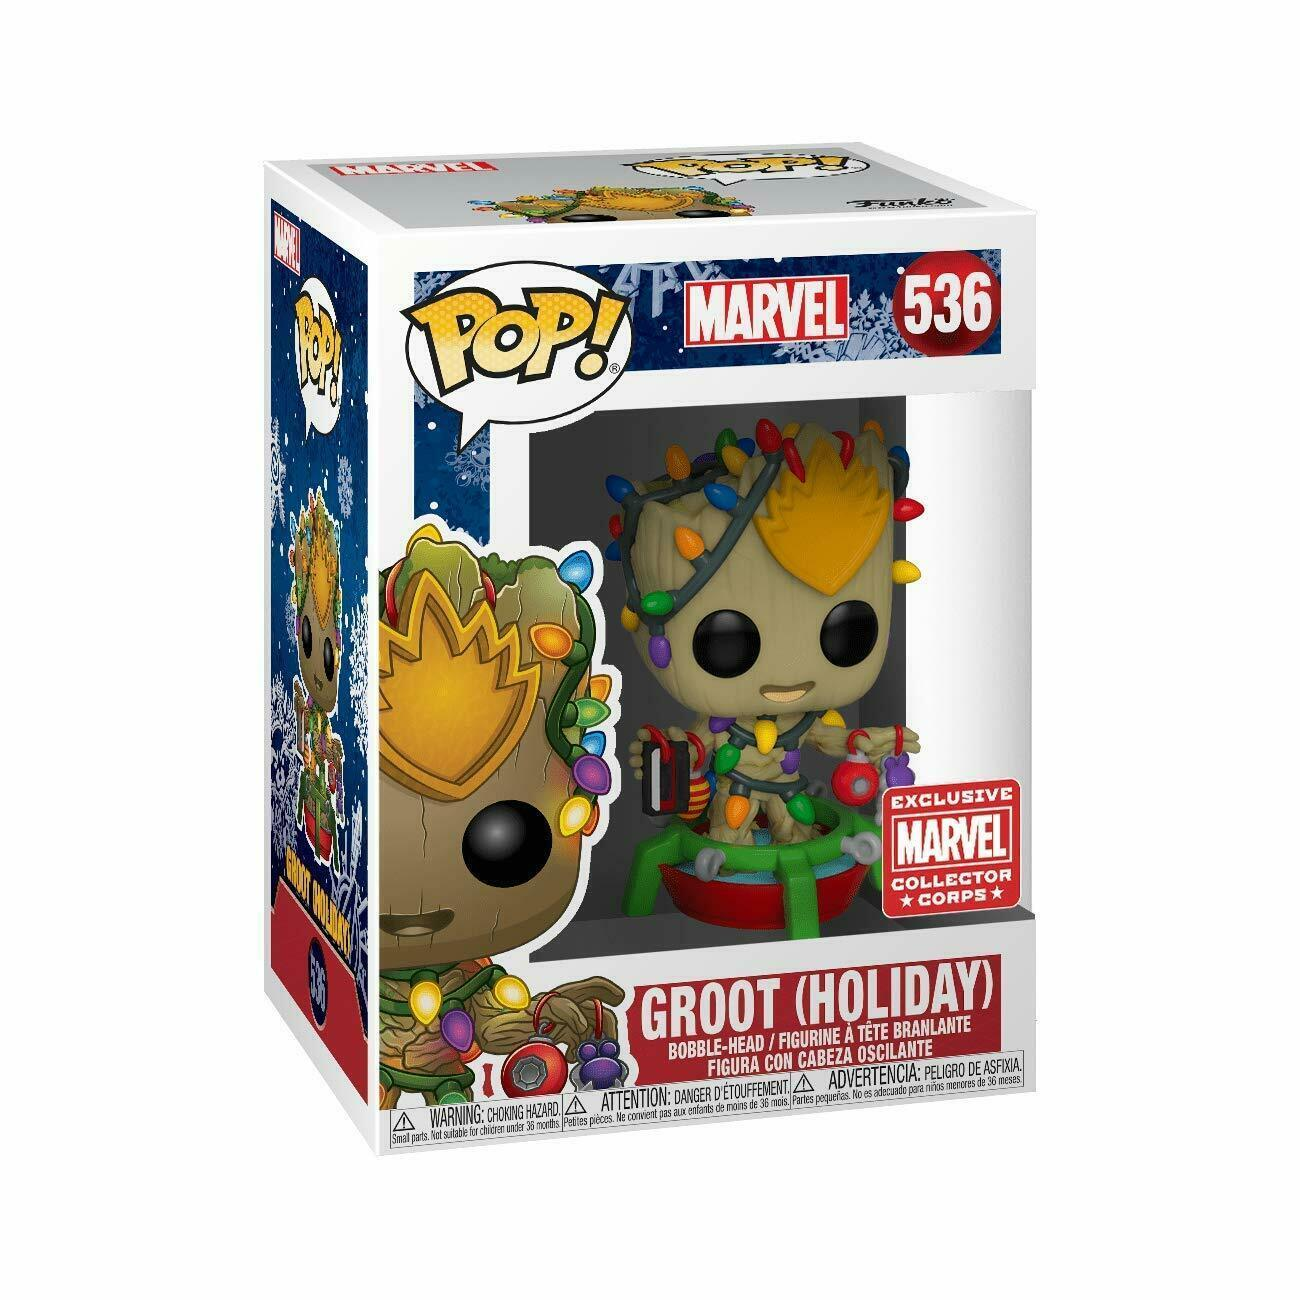 Groot Holiday - Marvel - Funko Pop #536 Exclusivo Collector Corps